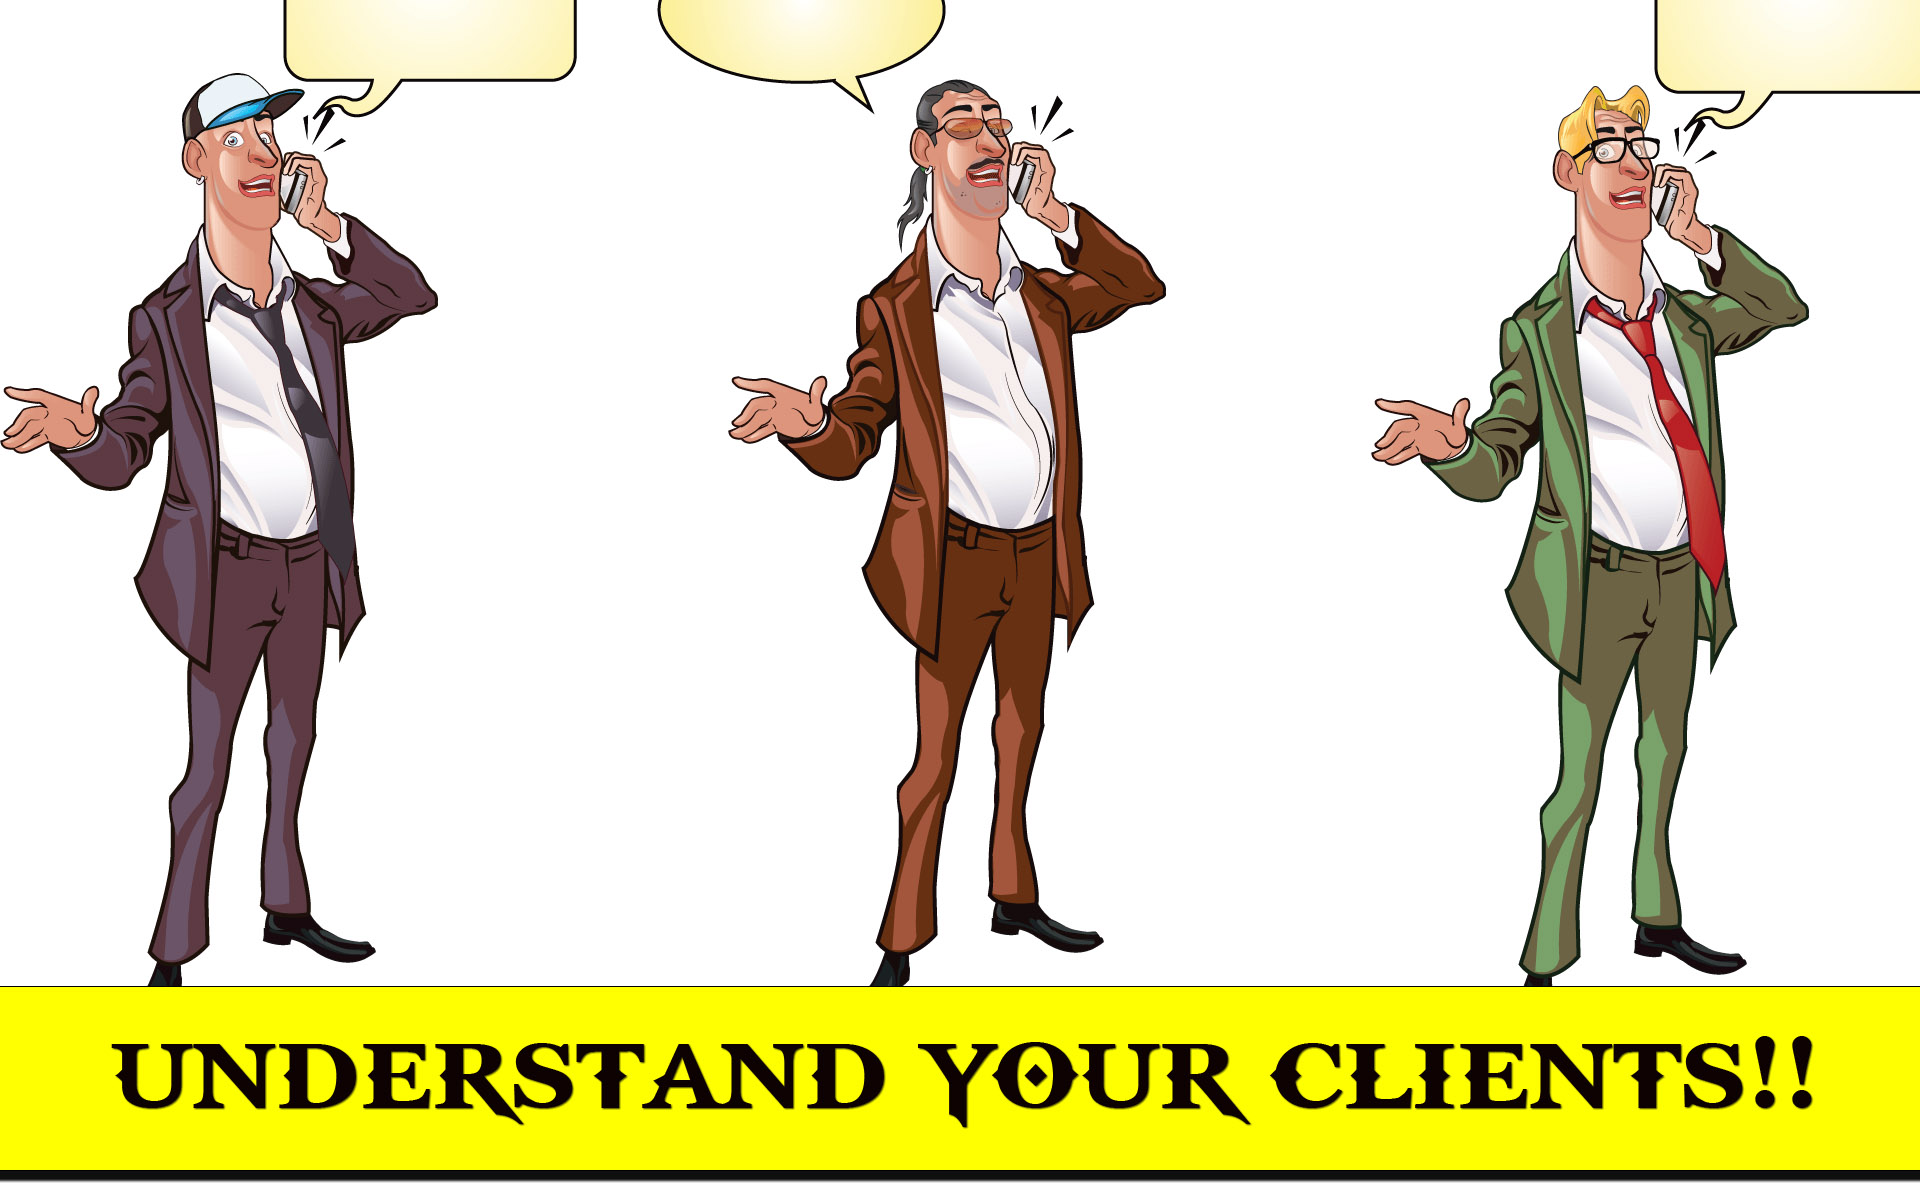 Understanding-your-clients.jpg